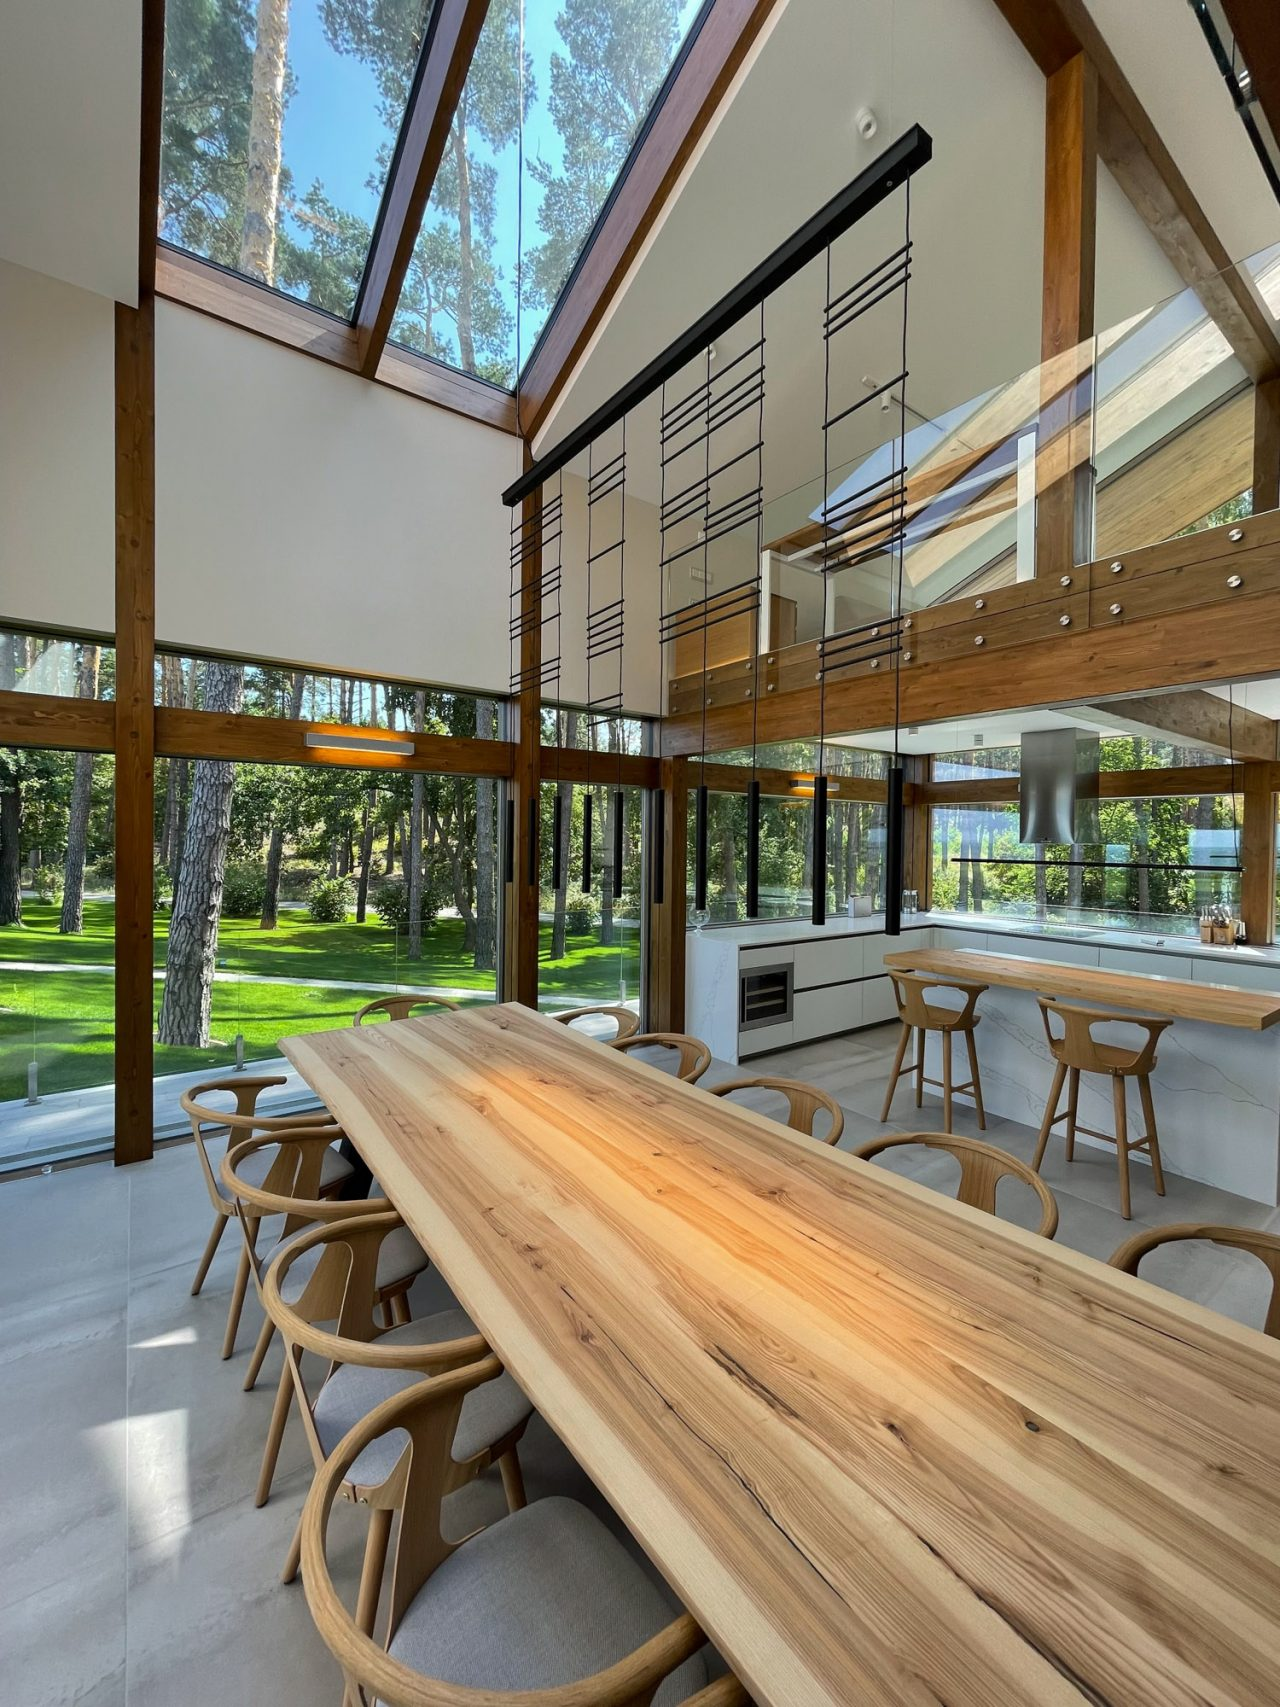 Hlass_house_KAGER - Hurii_06